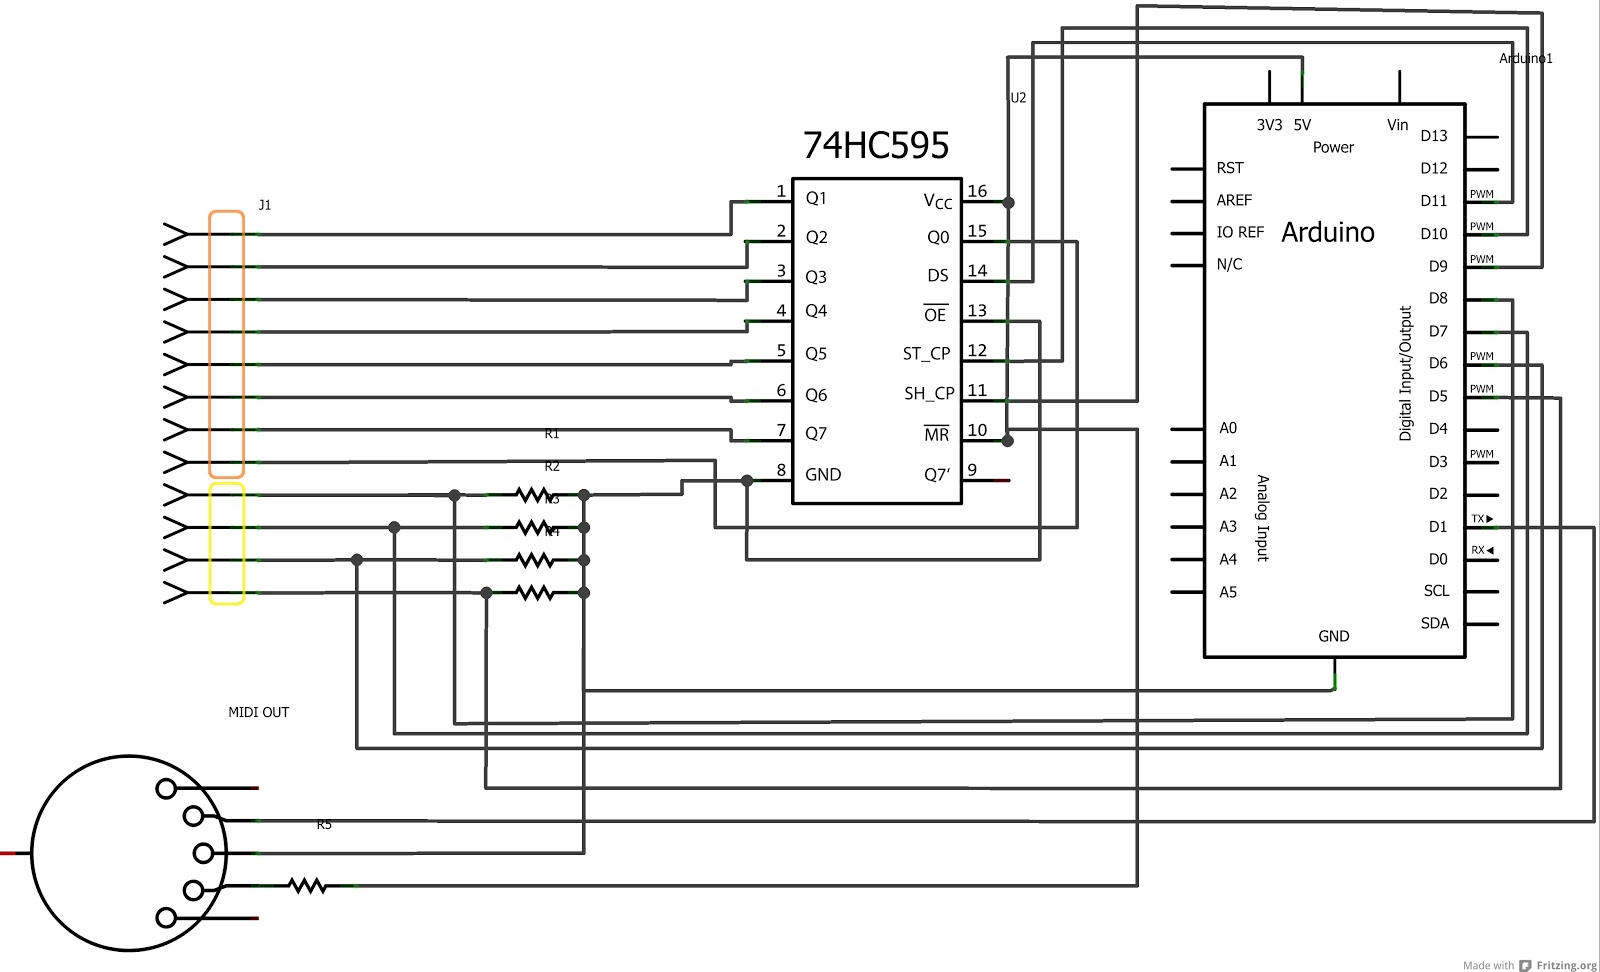 Code Tinker Hack How To Turn Piano Toy Into Midi Keyboard Using Effects Looper Wiring Diagram Ive End Up With Relatively Simple Schematics Below